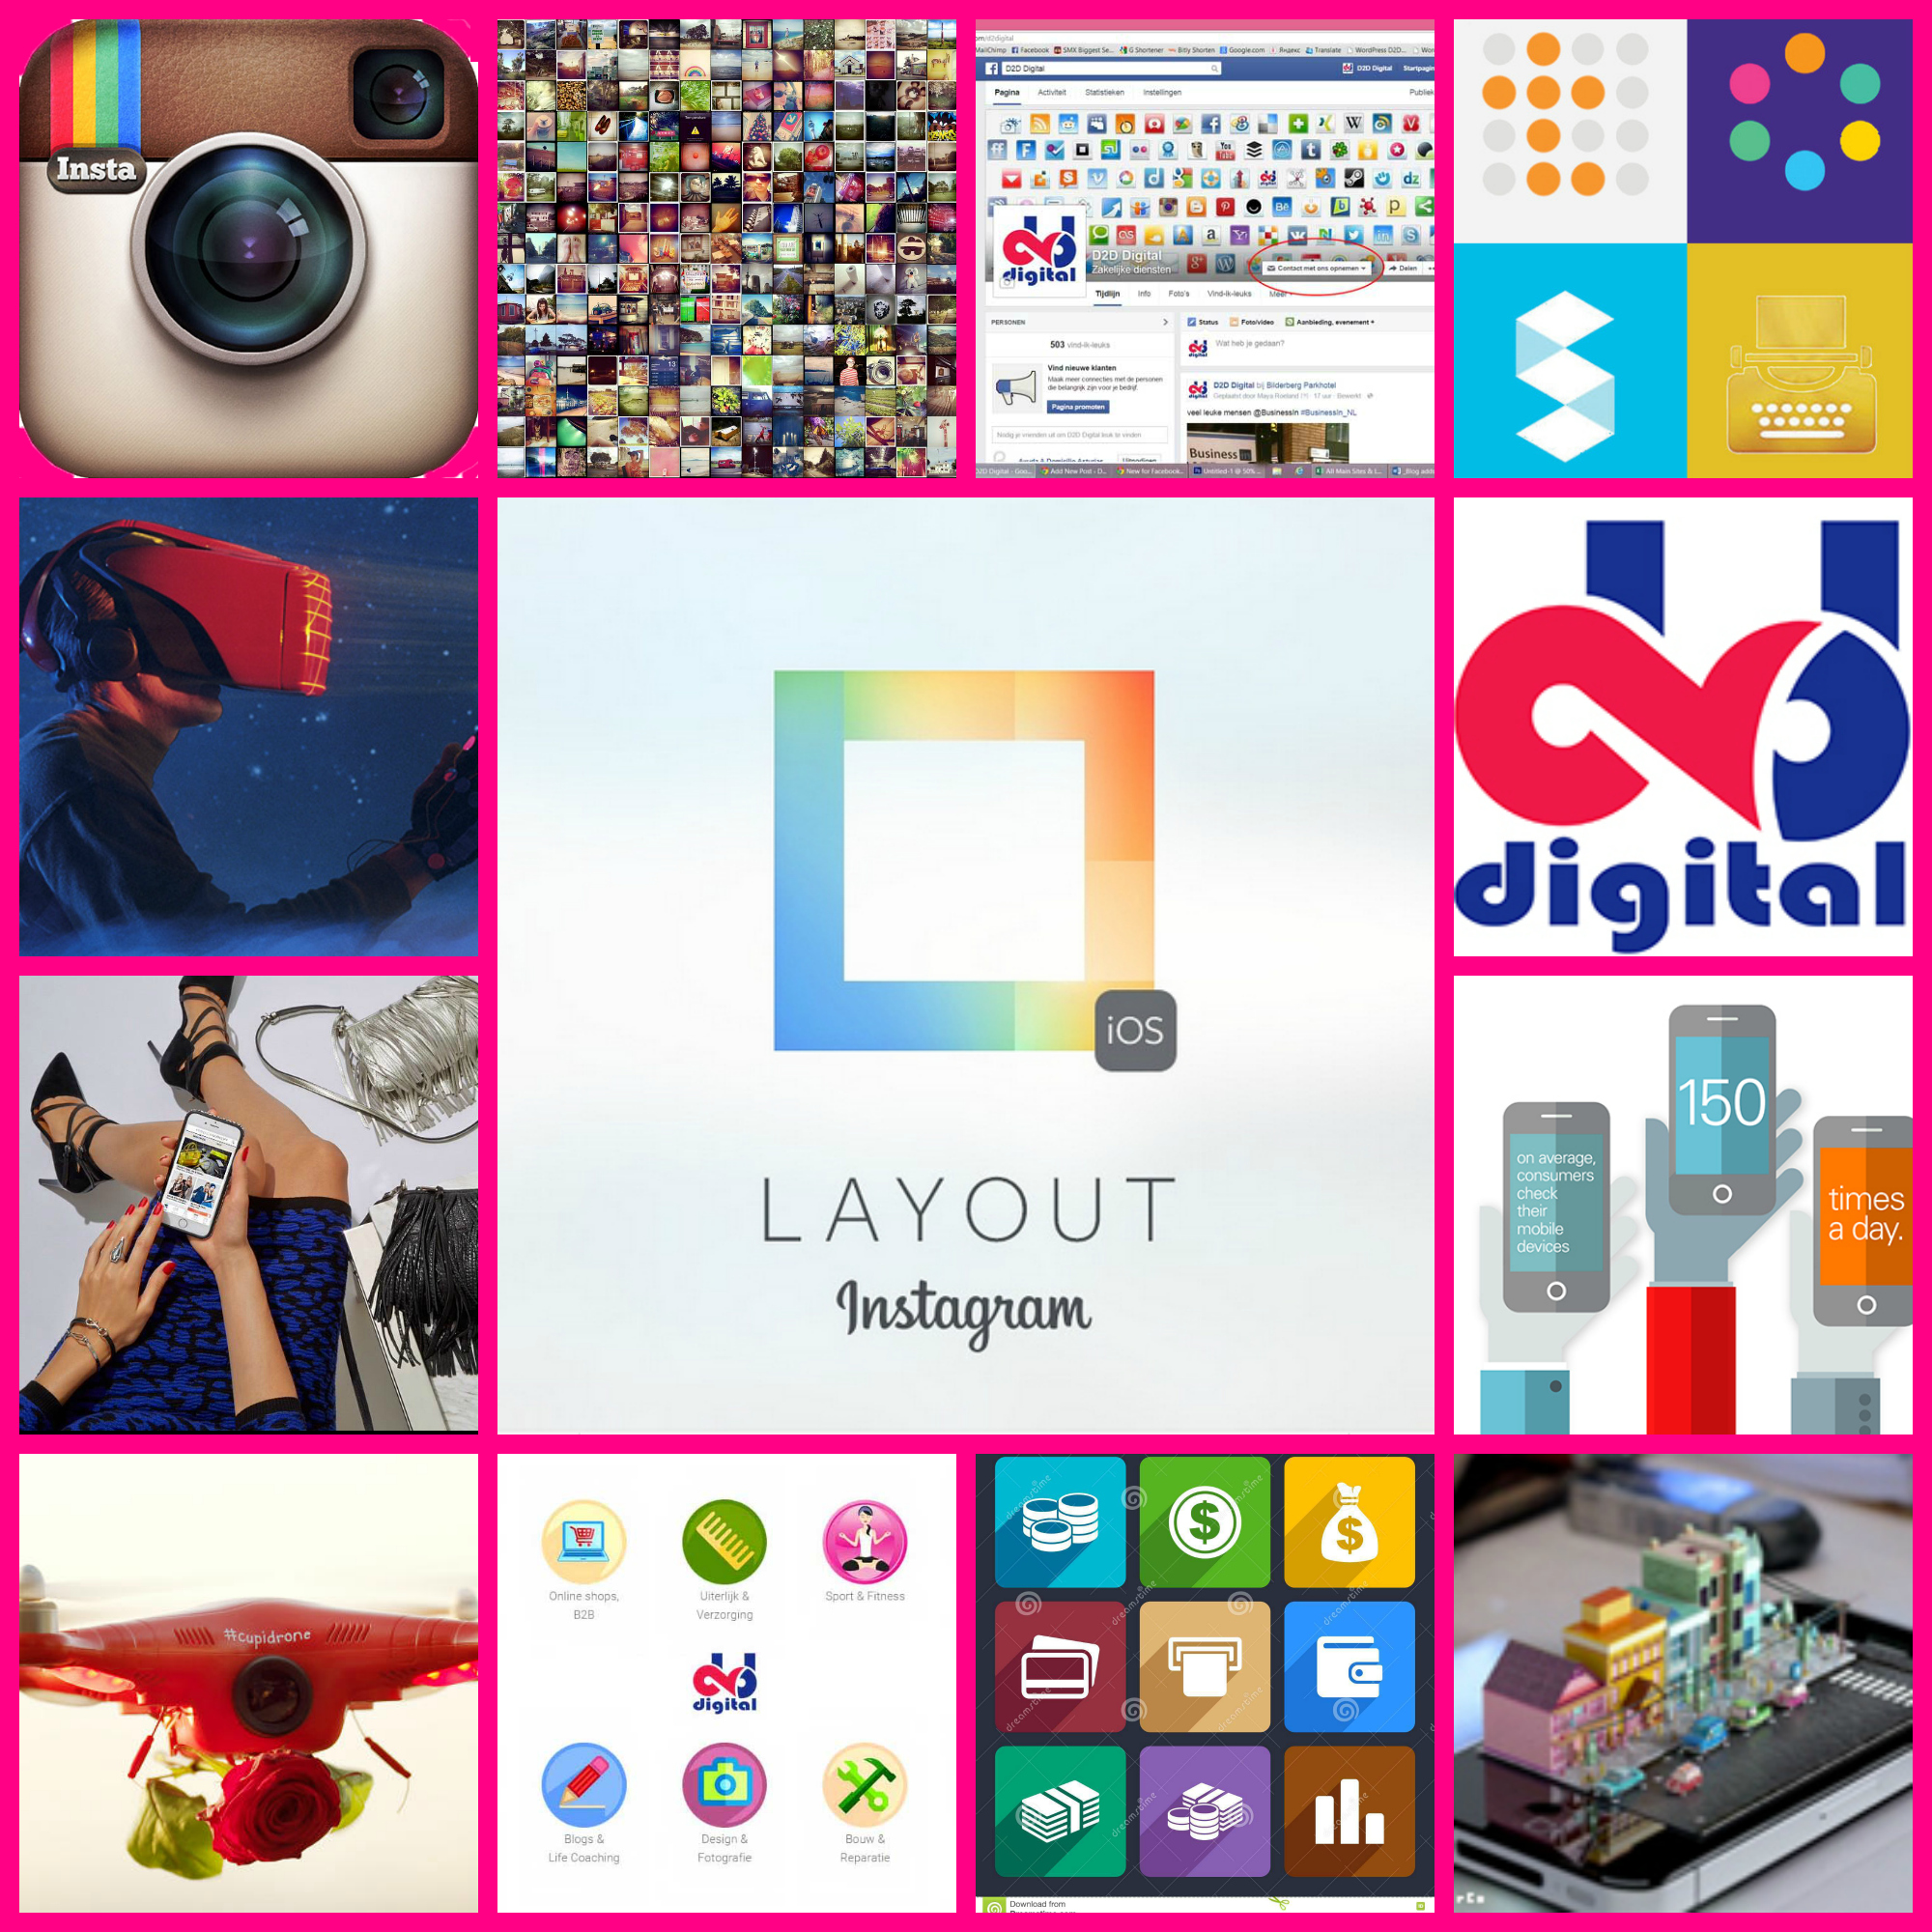 A new iOS app from Instagram – Layout